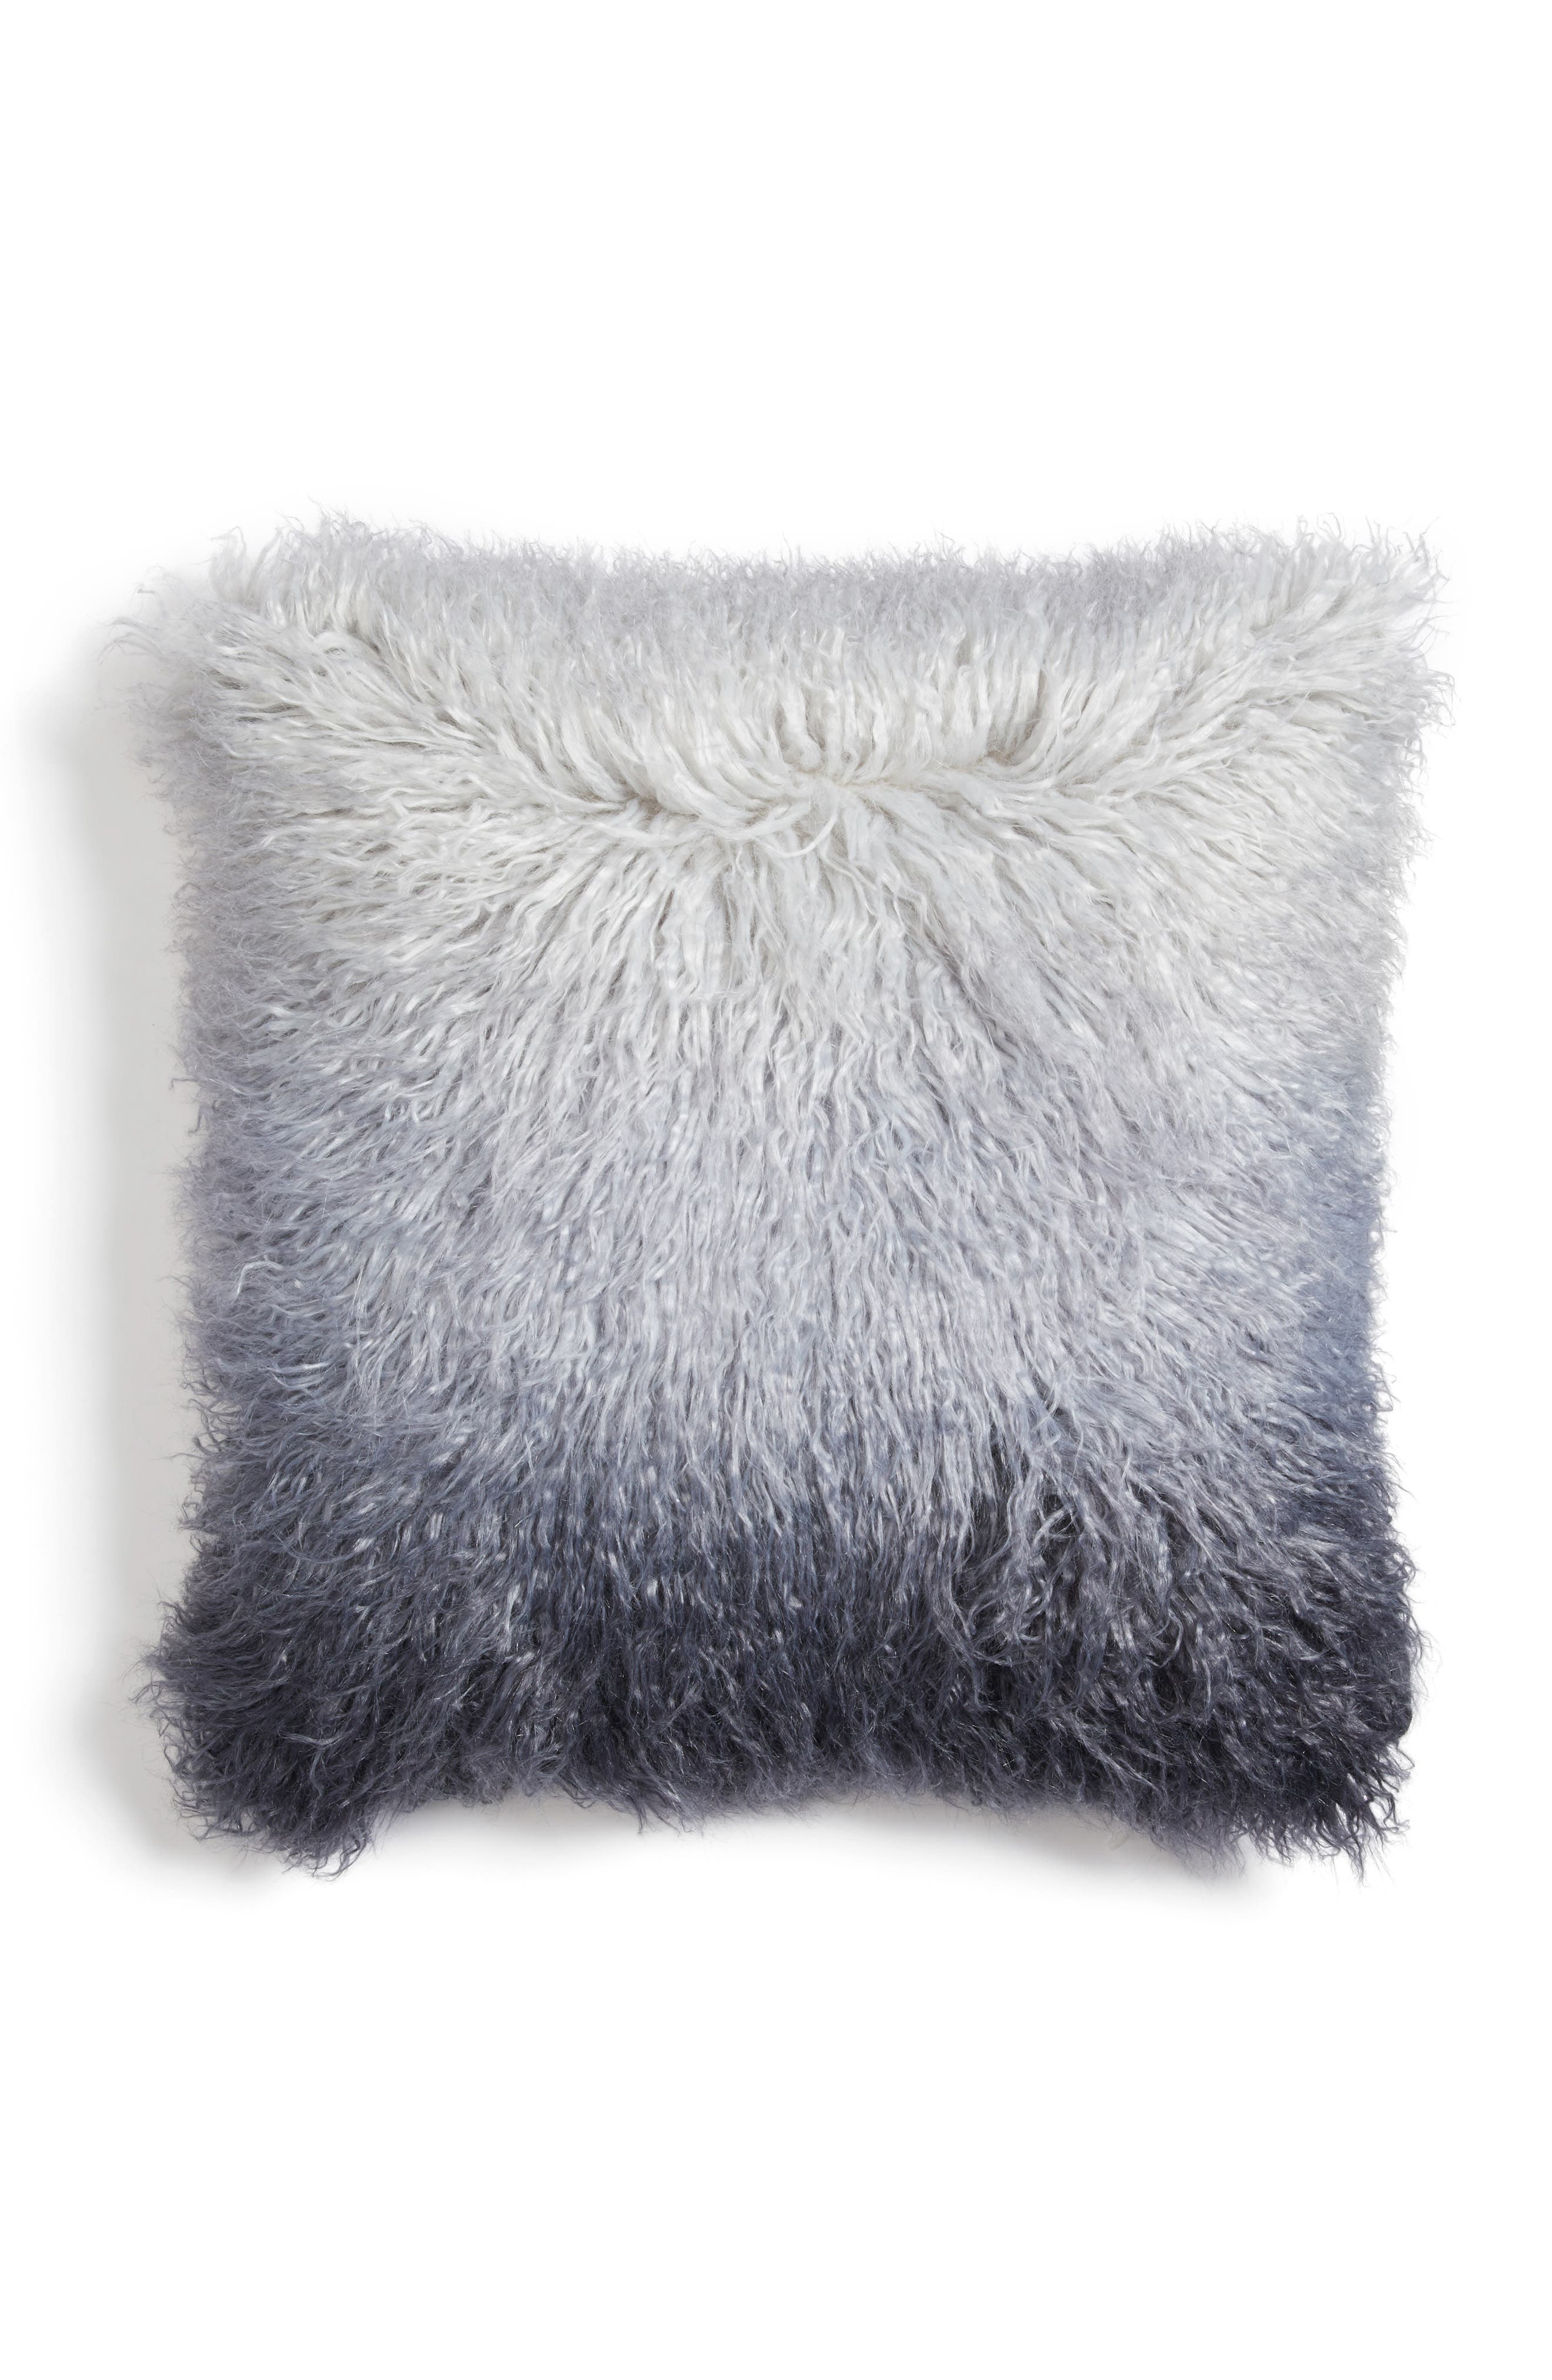 Alternate Image 1 Selected - Nordstrom at Home Ombré Faux Fur Flokati Accent Pillow